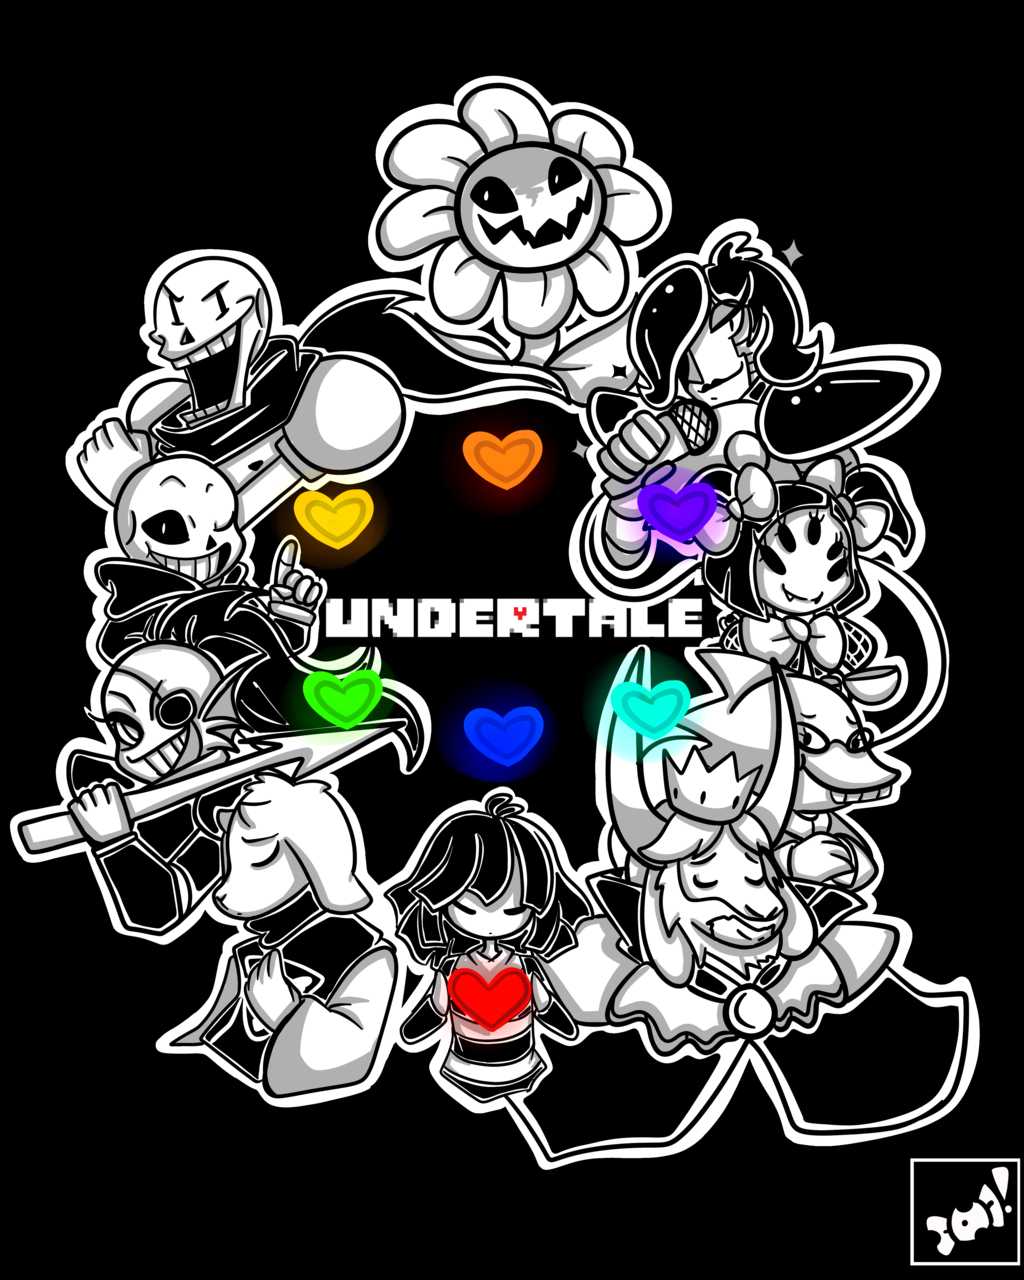 Undertale iphone wallpaper tumblr - I Finally Finished Undertale And Now I Can T Stop Drawing It On My Sketchbook V So I Had To Do A Better Picture Edit So Unfortunately This Image